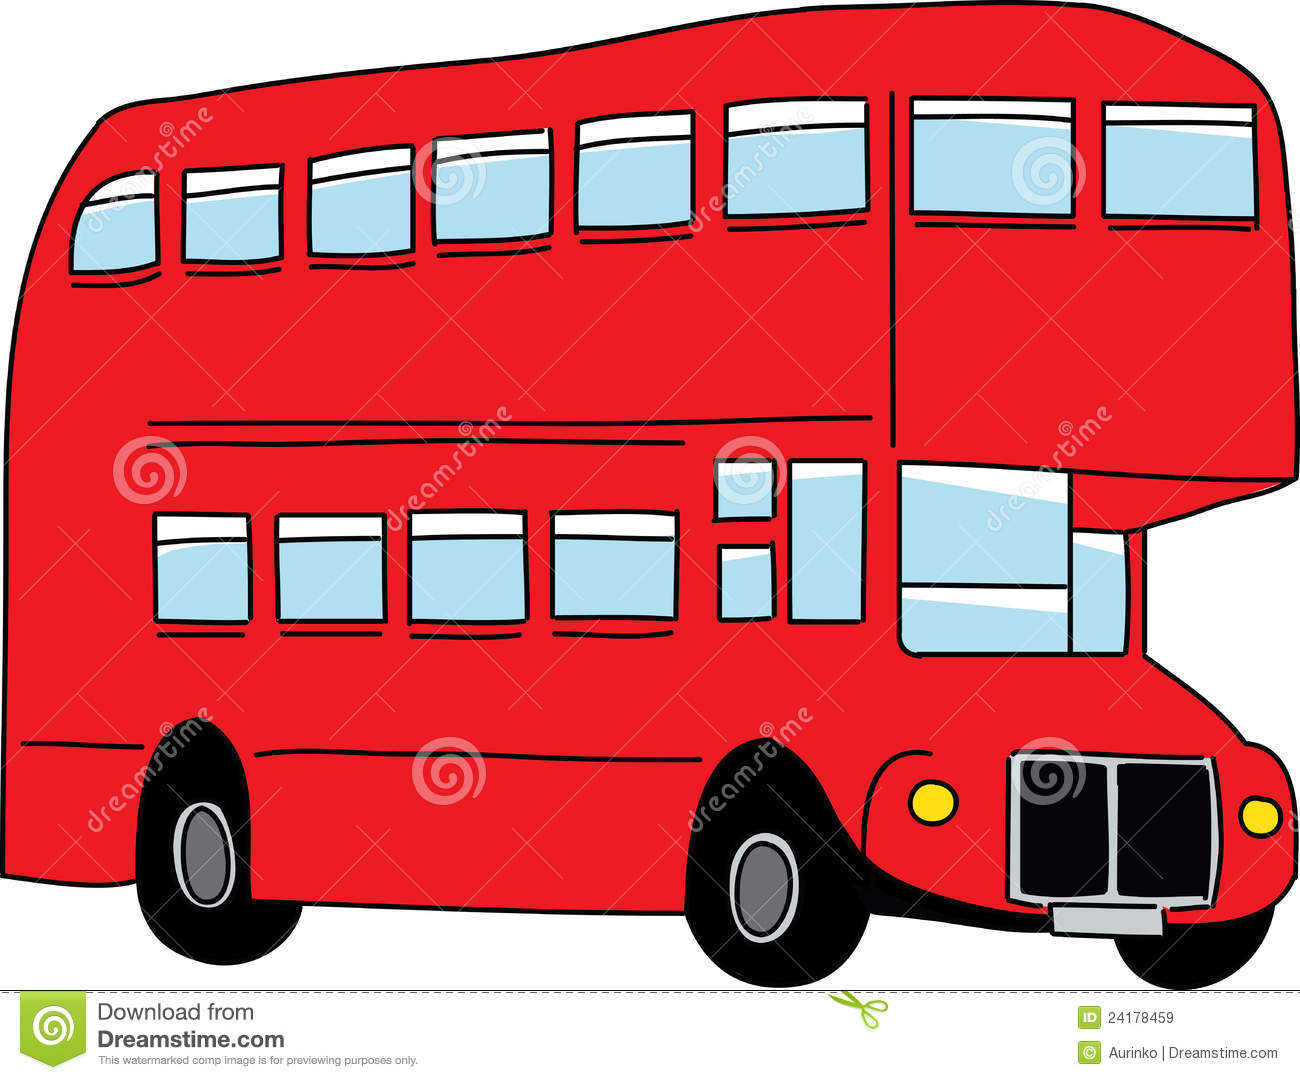 London Bus Royalty Free Stock Images - Image: 24178459